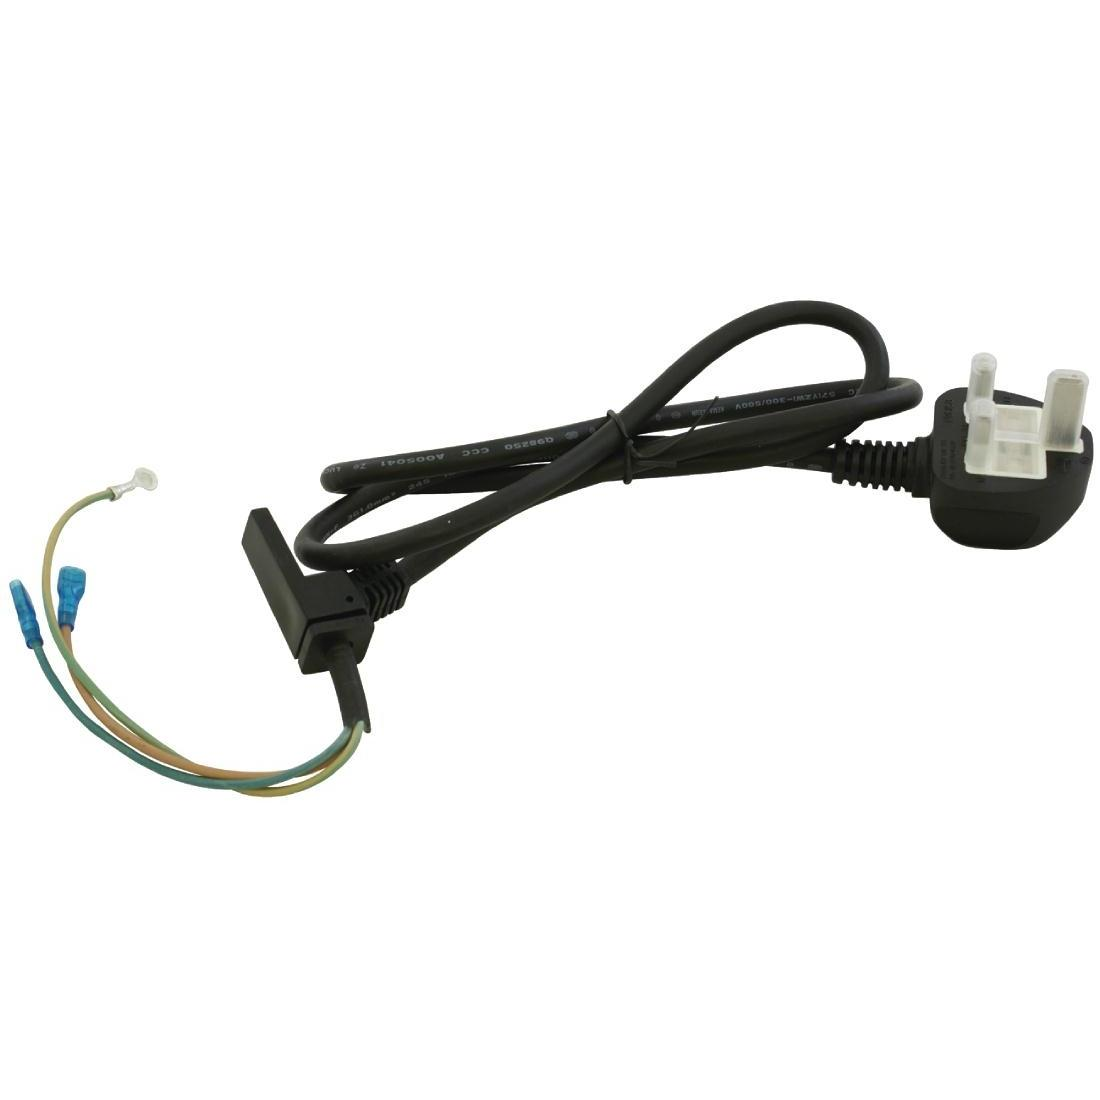 AC244 - Buffalo Power Cord - AC244